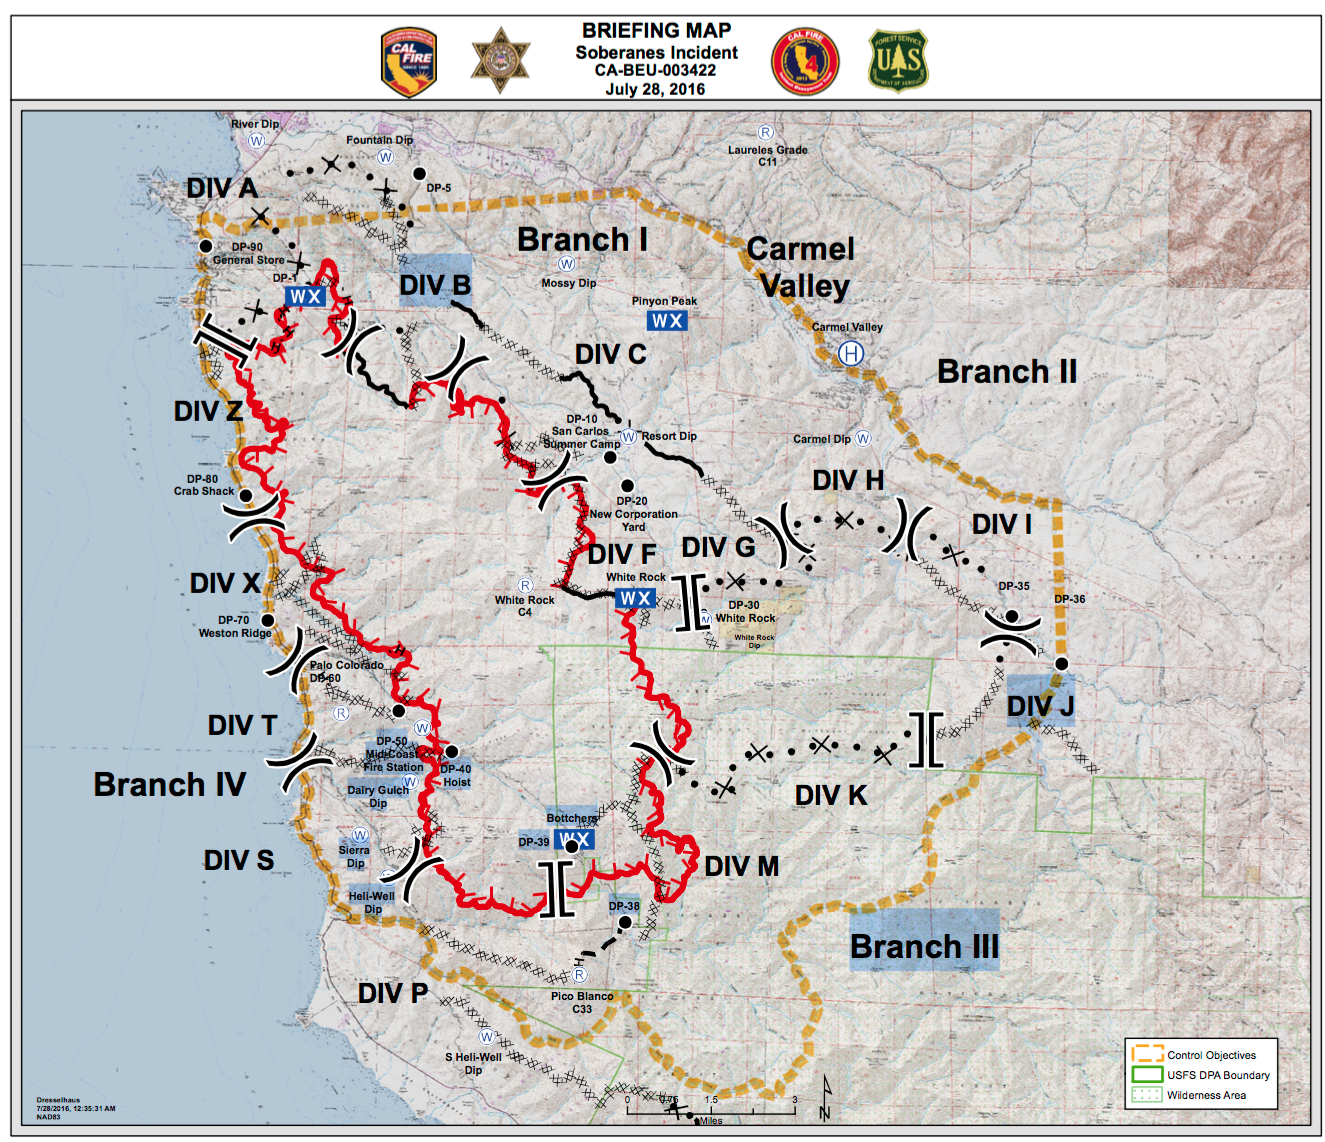 briefing map soberanes fire july  .  soberness fire maps  big sur california